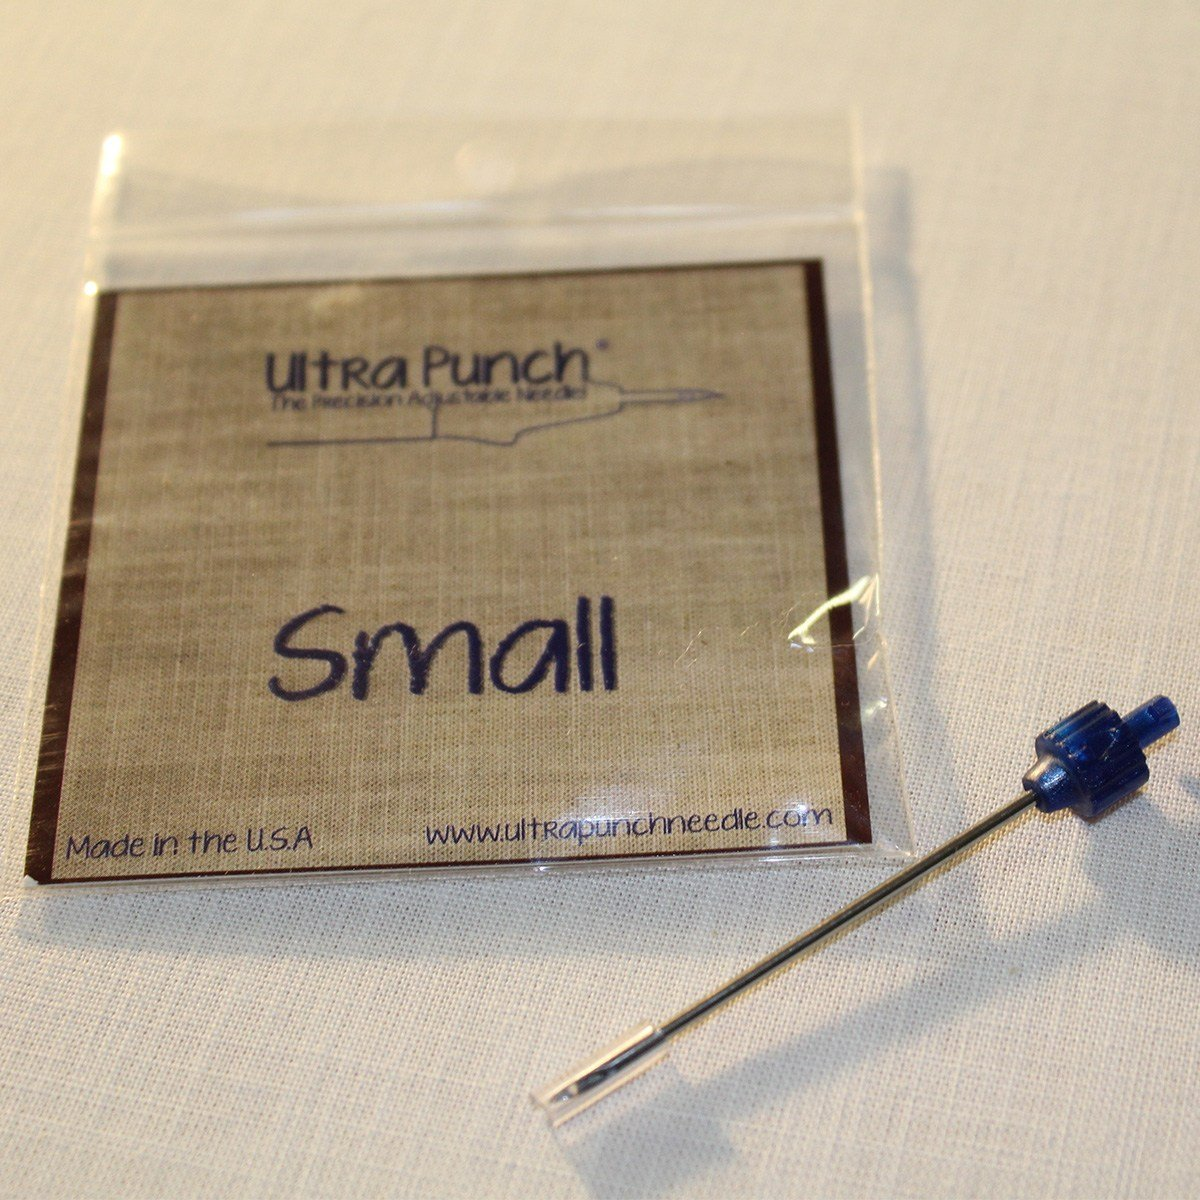 Ultra Punch Needle - Small Needle Tip